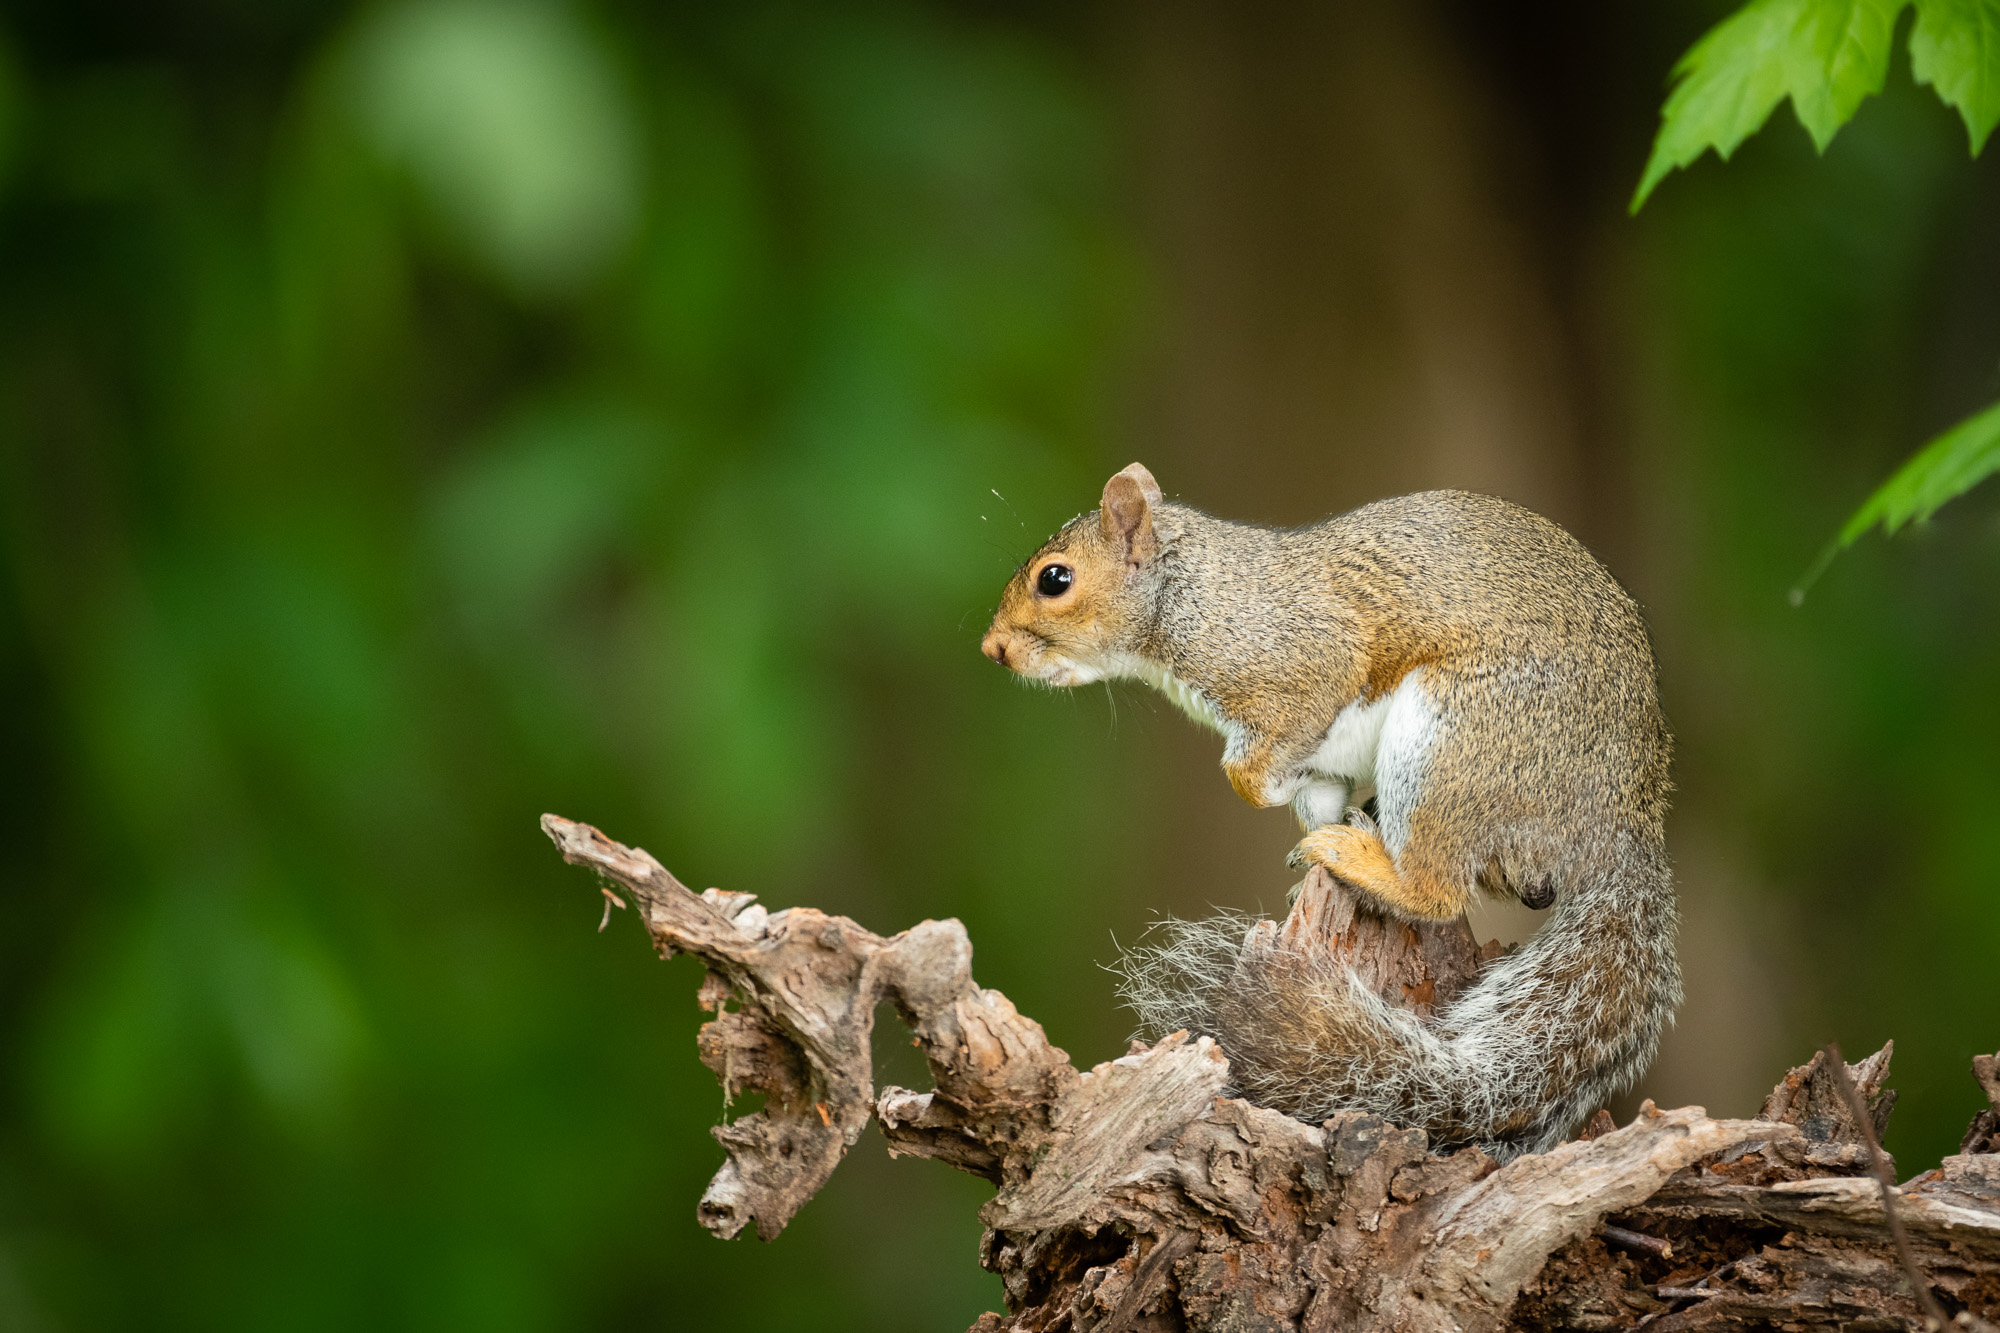 A posing Eastern Gray Squirrel. They may be common, but I still enjoy photographing them.